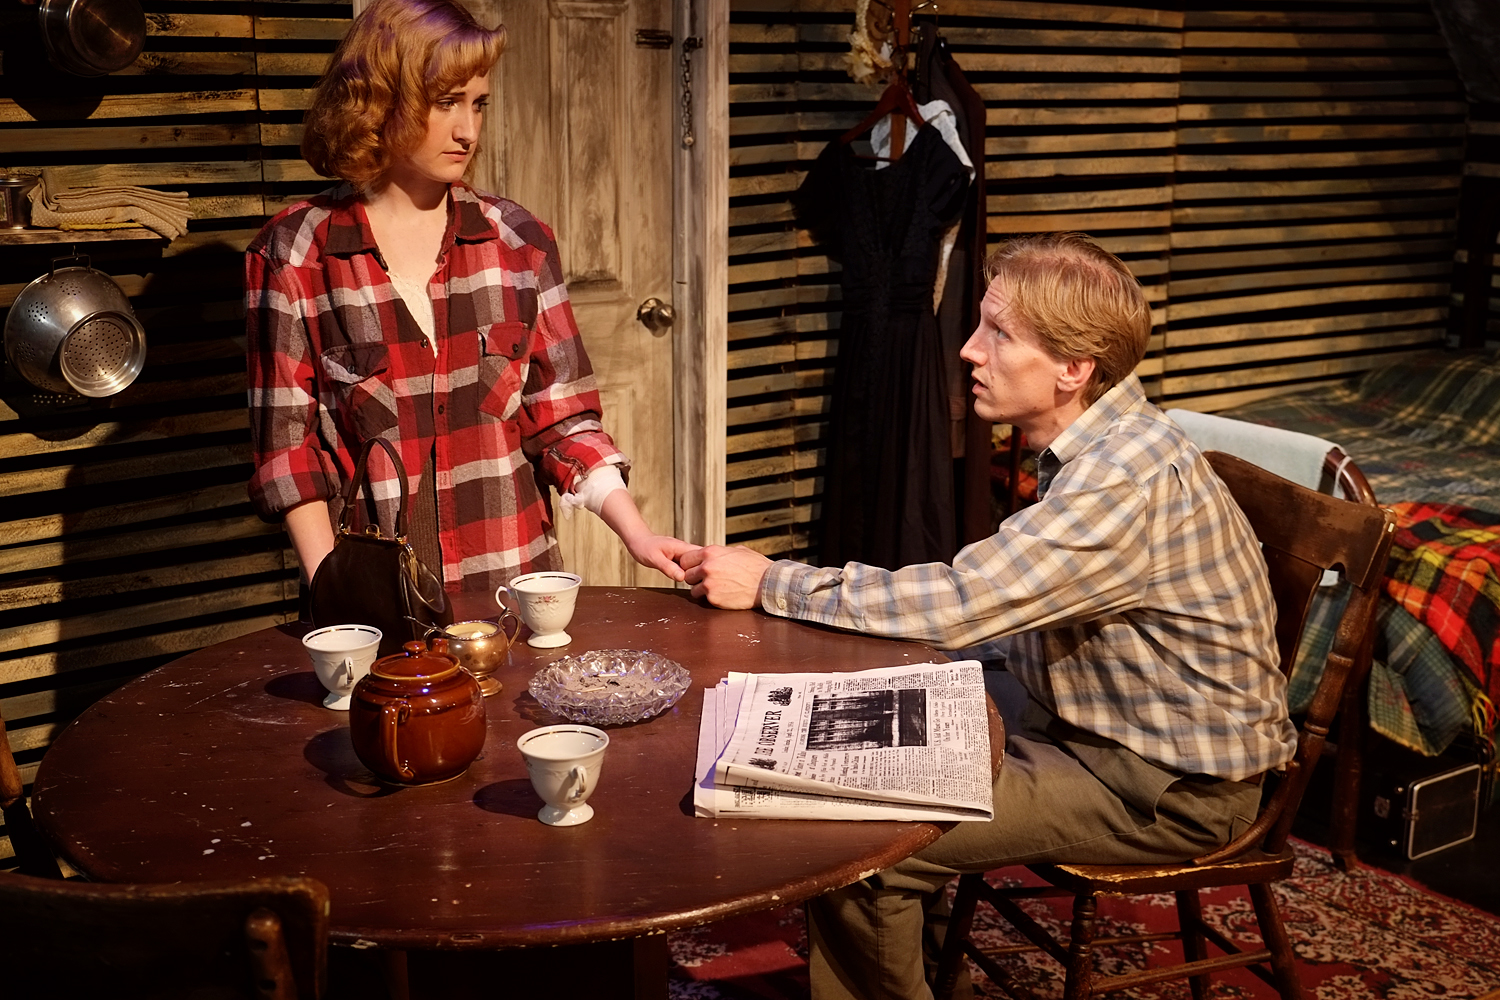 Look Back in Anger - Brick + Mortar Theatre